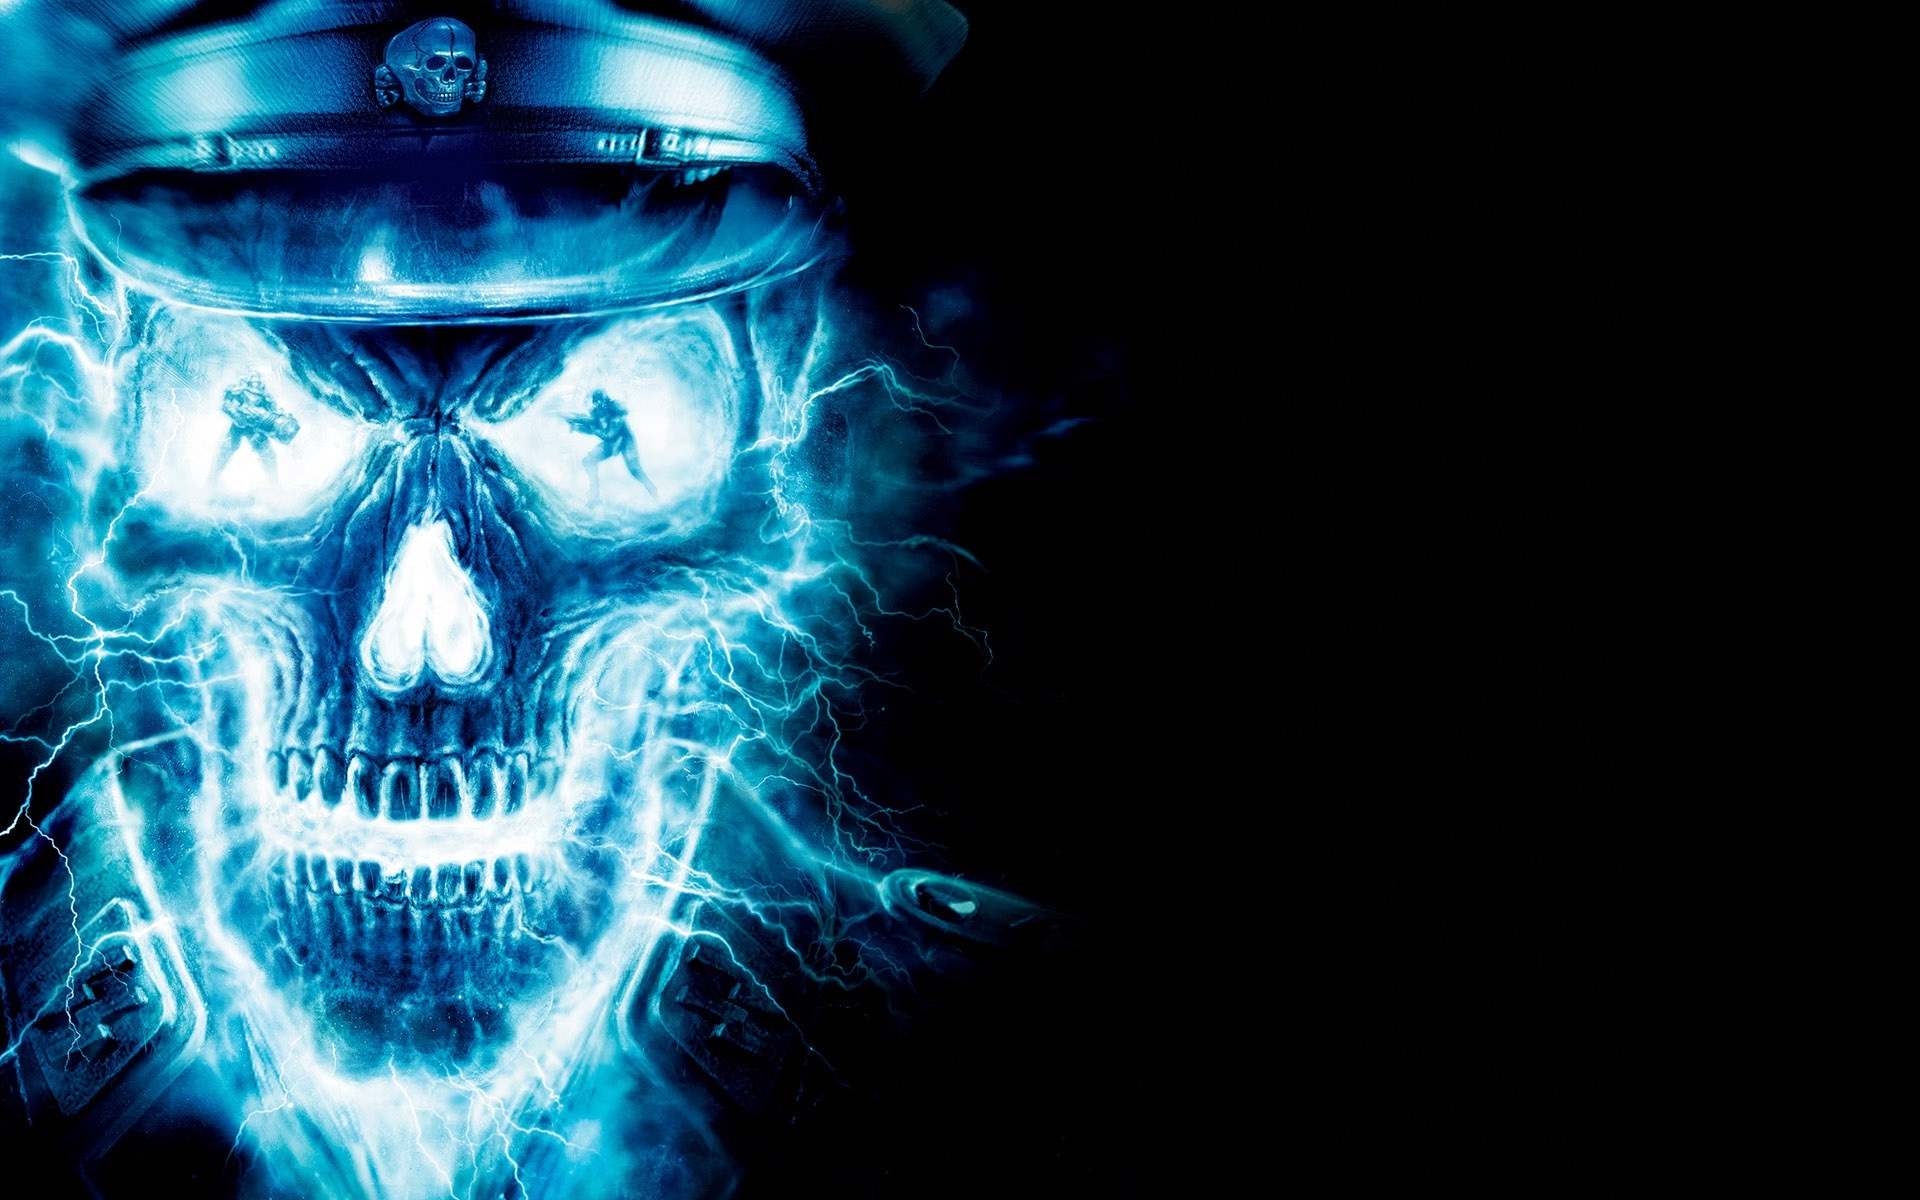 Dark Skull Wallpaper widescreen ImageBankbiz 1920x1200